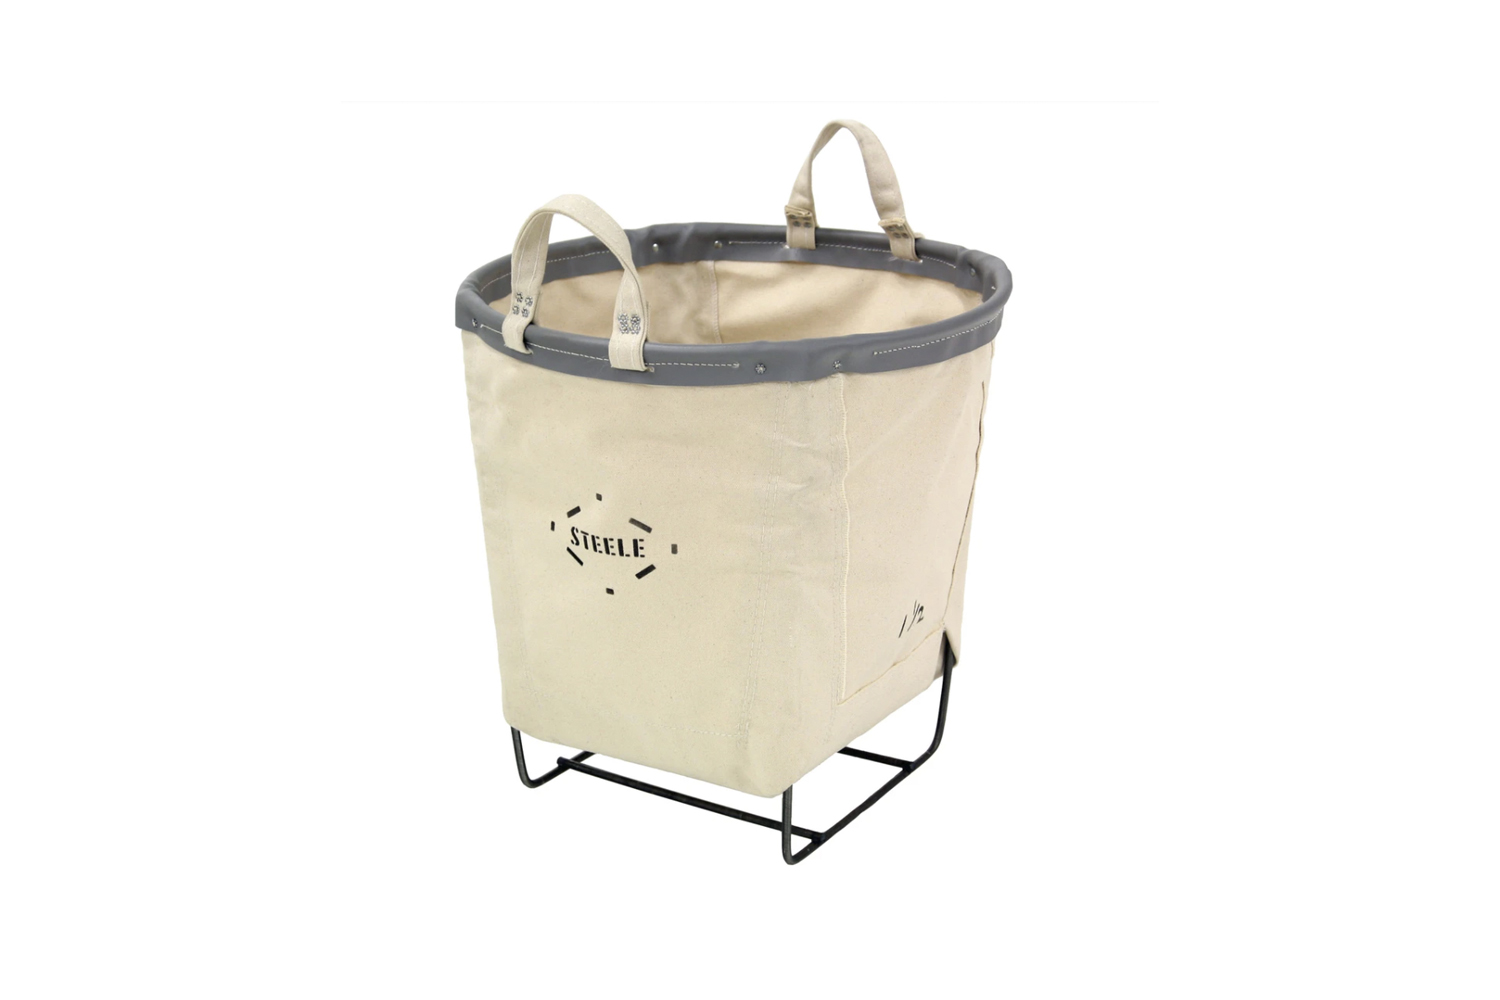 the steele canvas round carry basket is \$99.95 at steele directly. 16